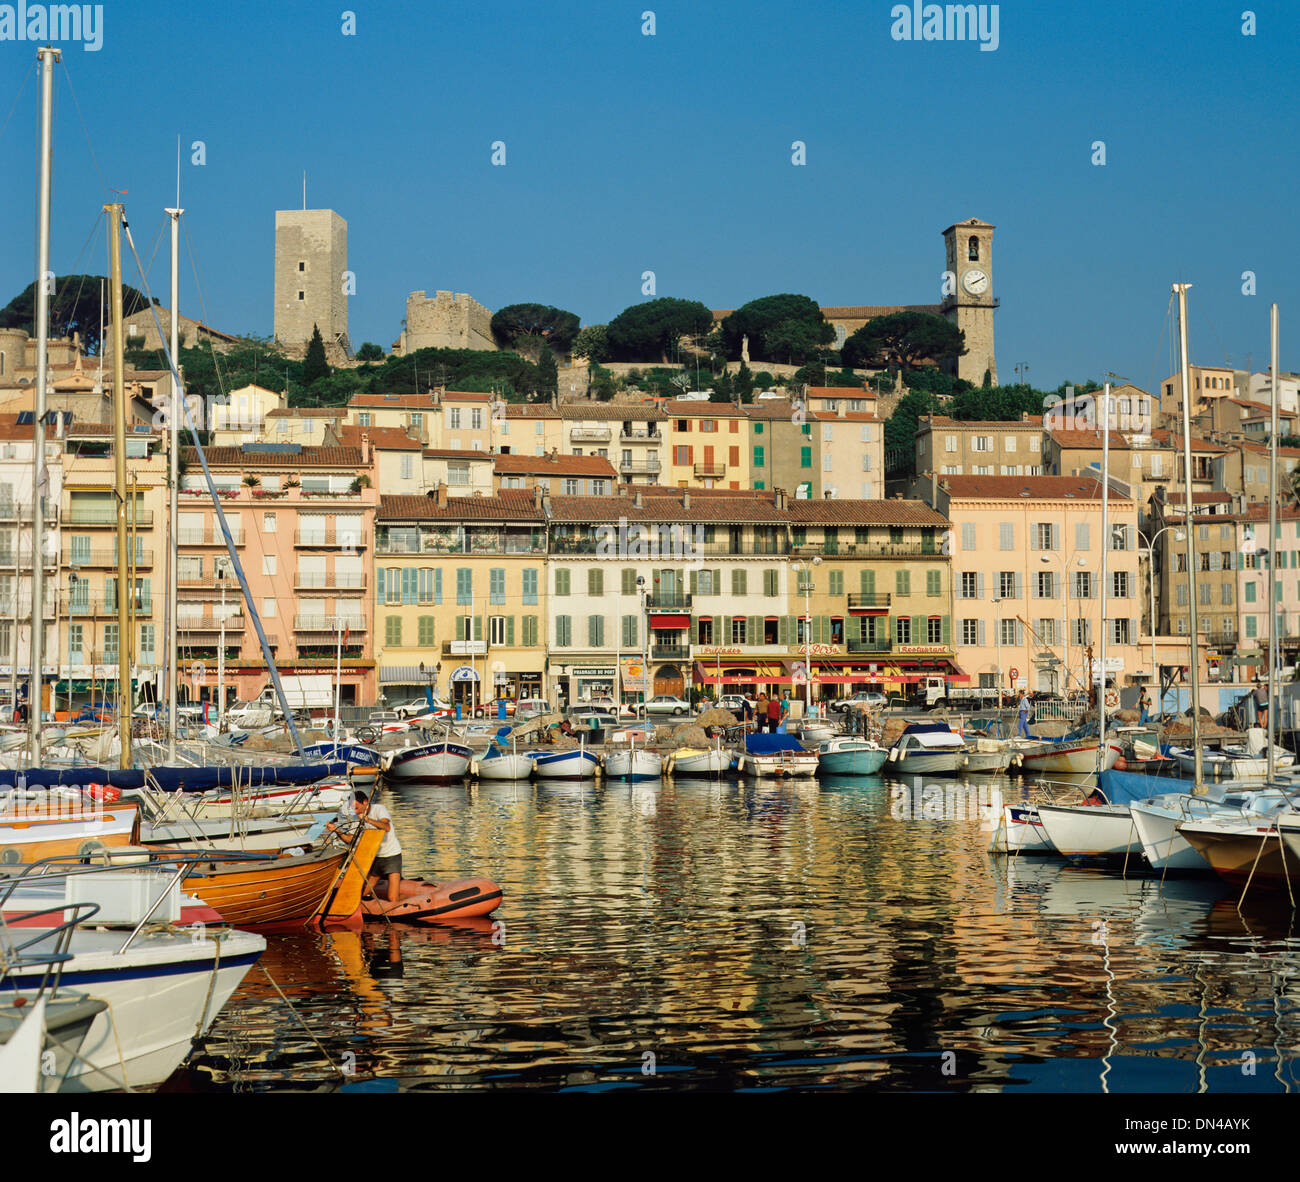 View of the Old Harbour, Cannes, Alpes-Maritimes, France - Stock Image